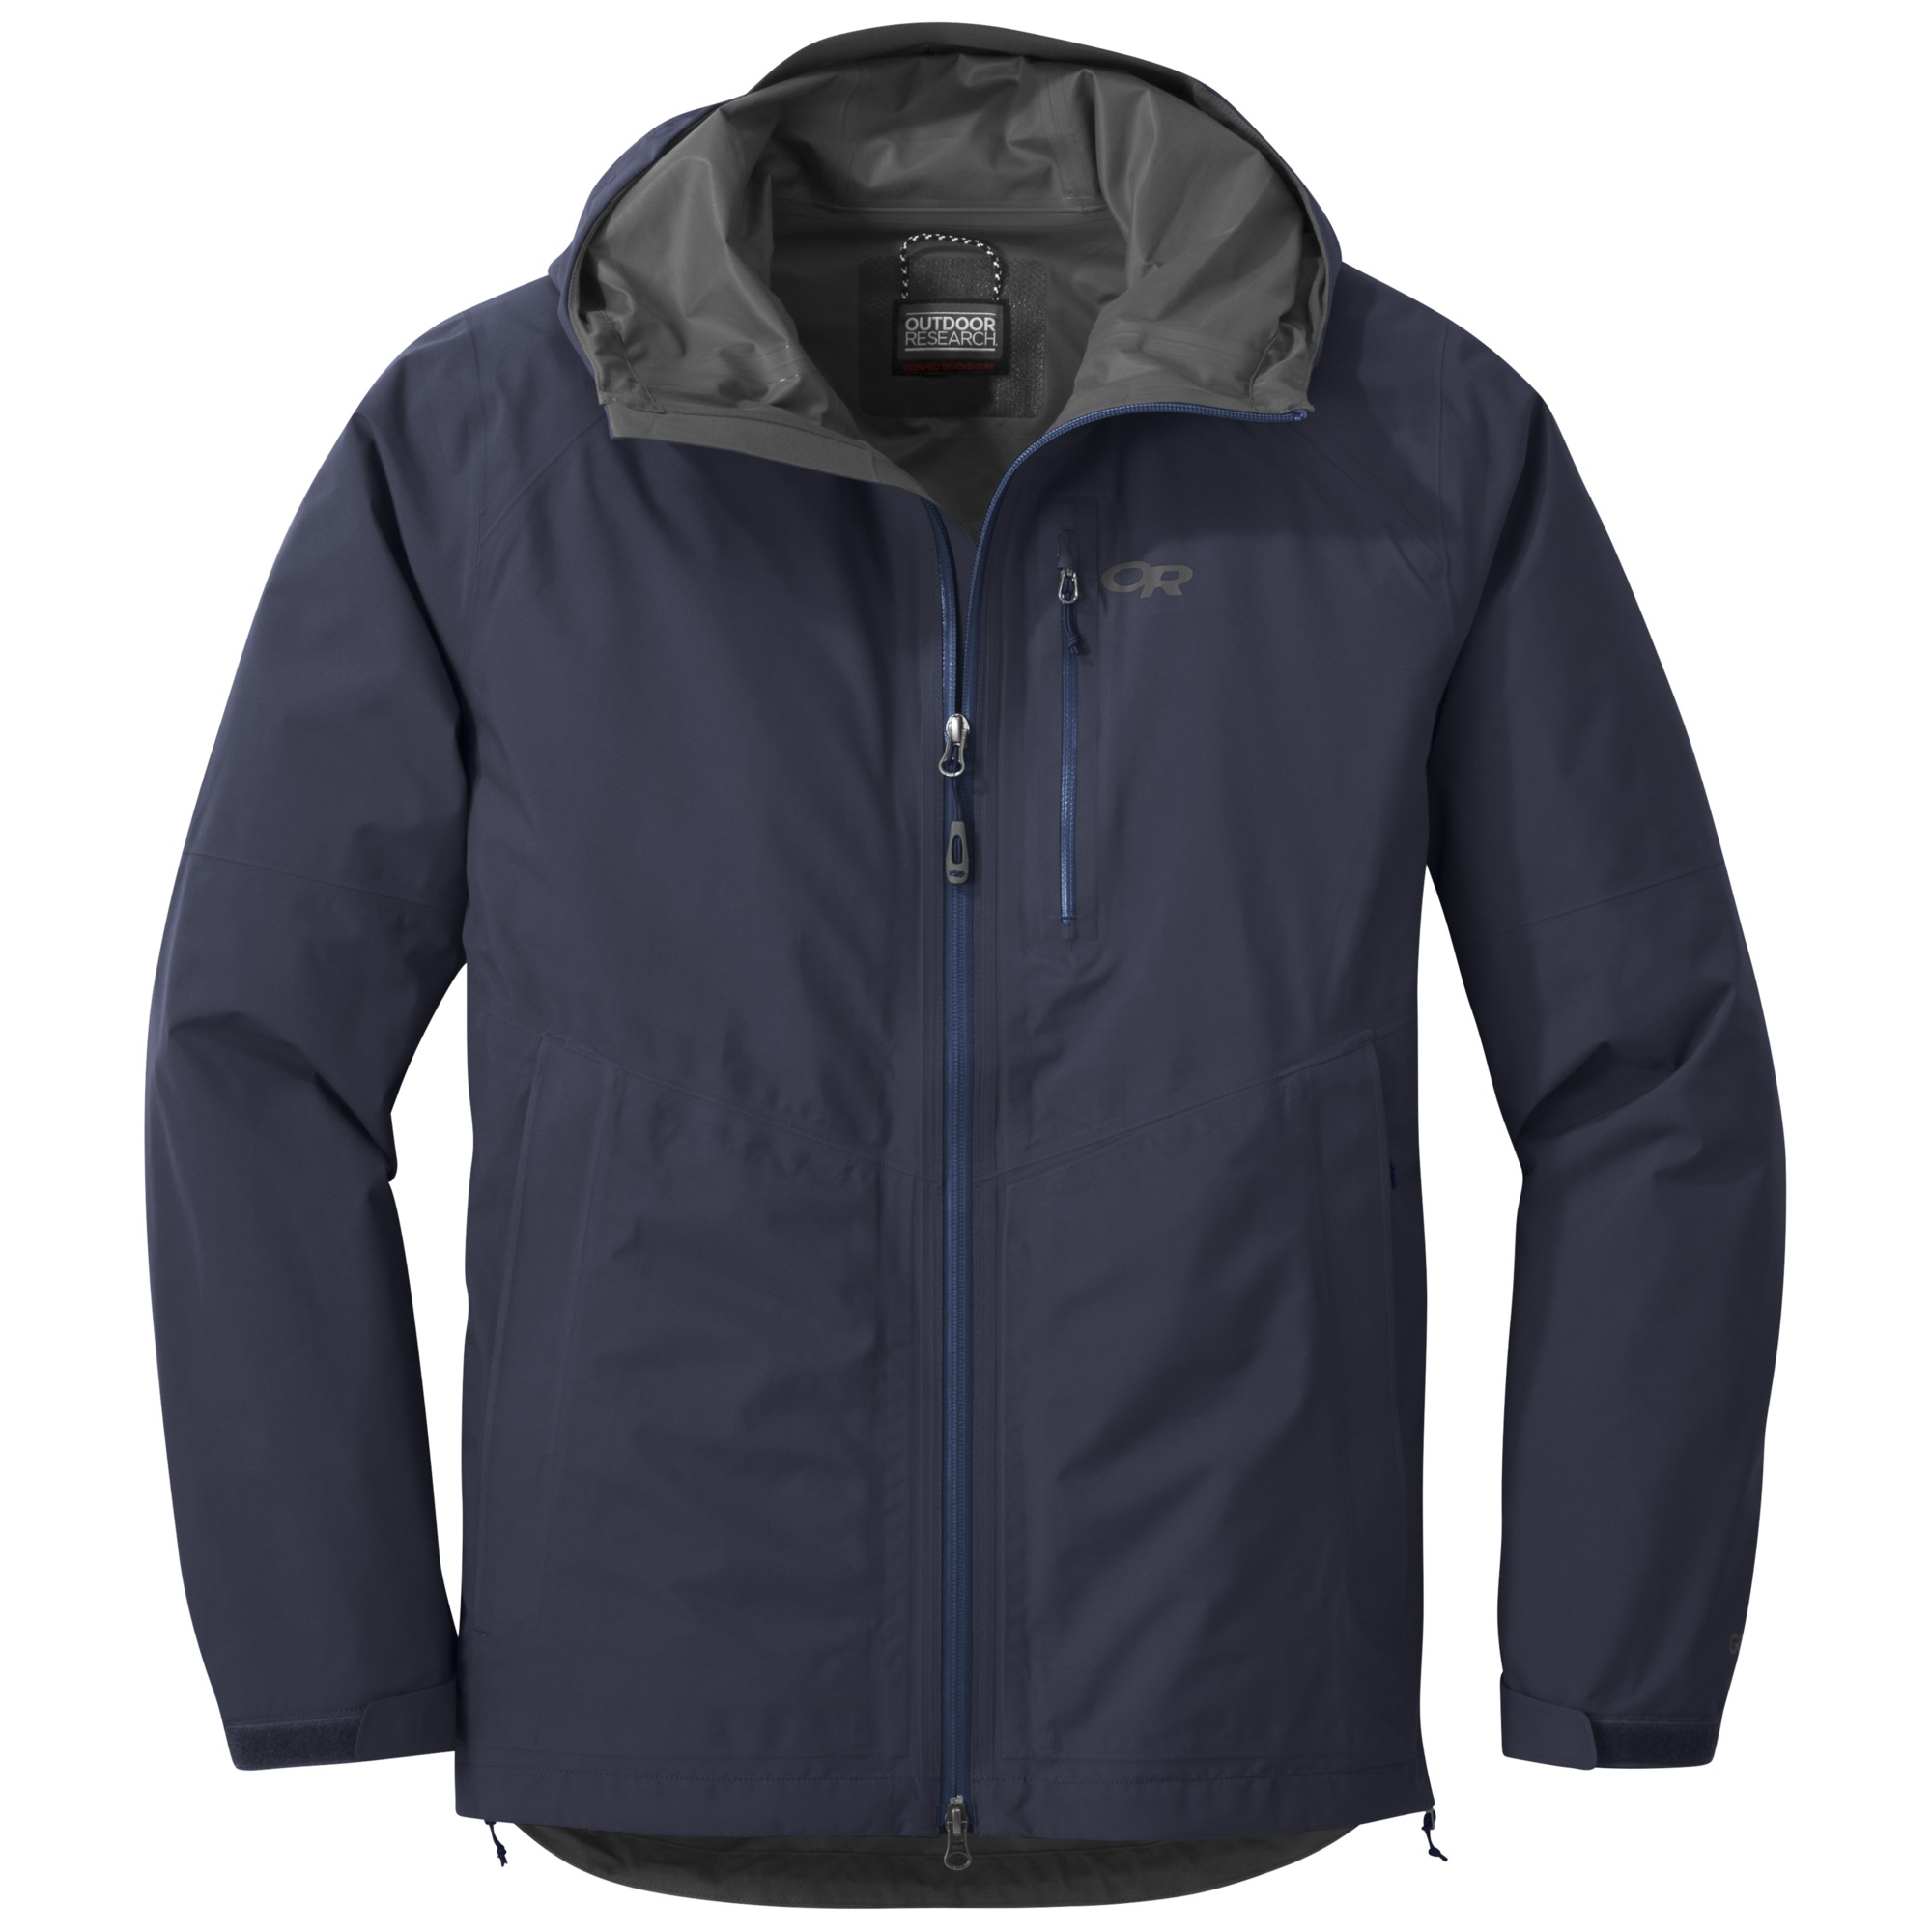 96985450b Men's Foray Jacket - naval blue | Outdoor Research